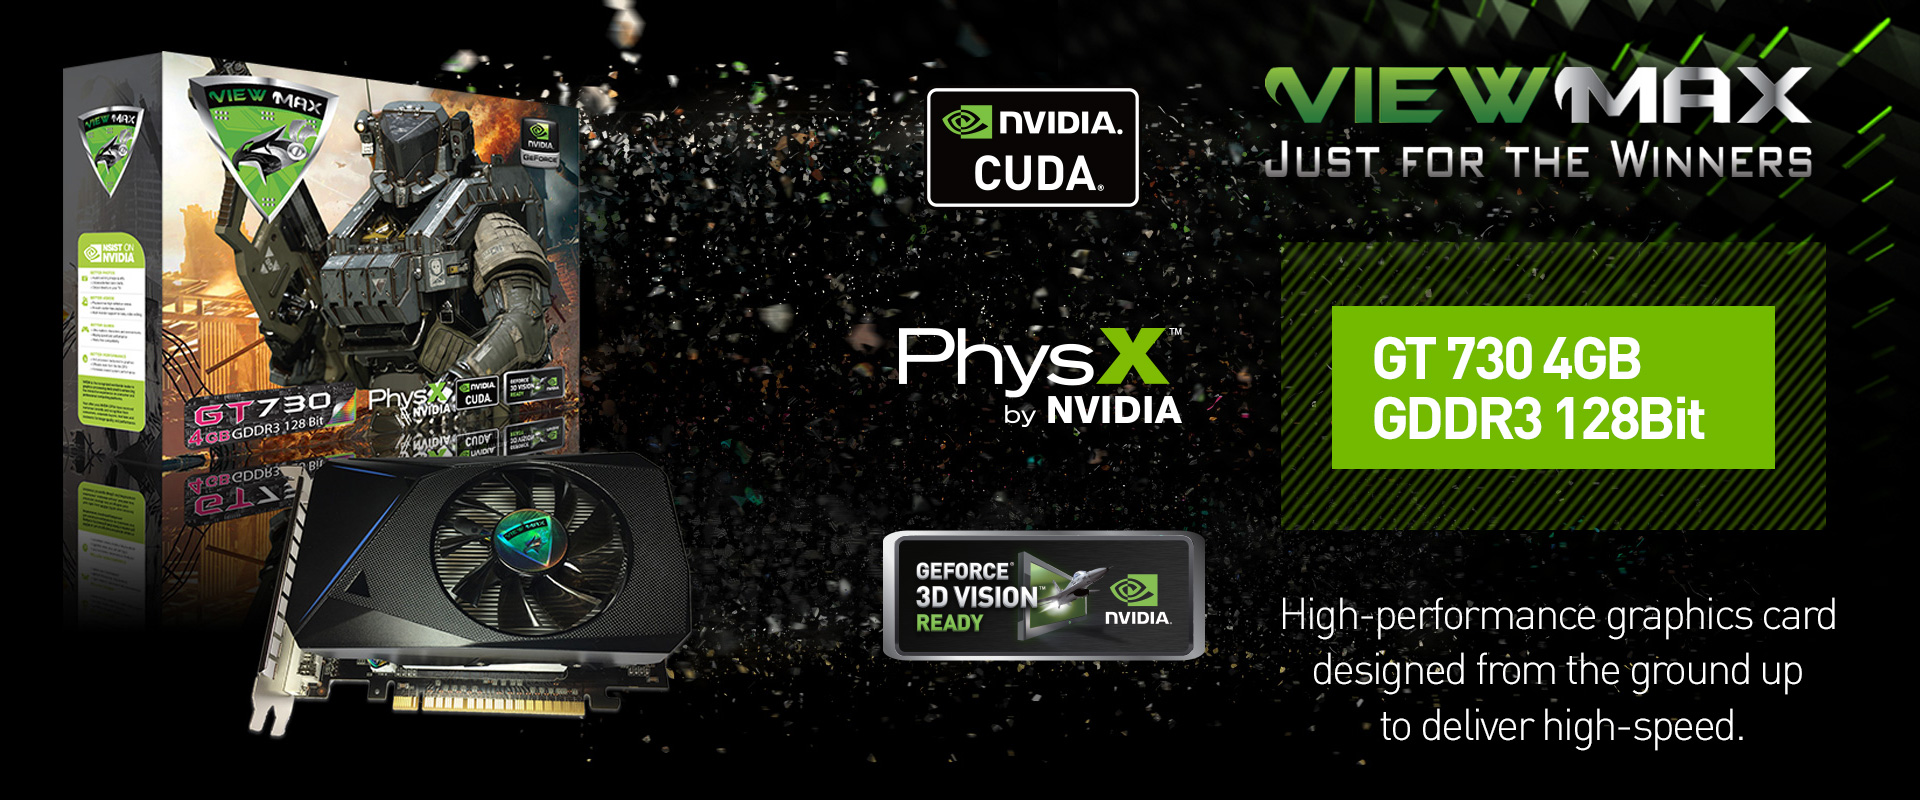 download drivers nvidia geforce gt 730